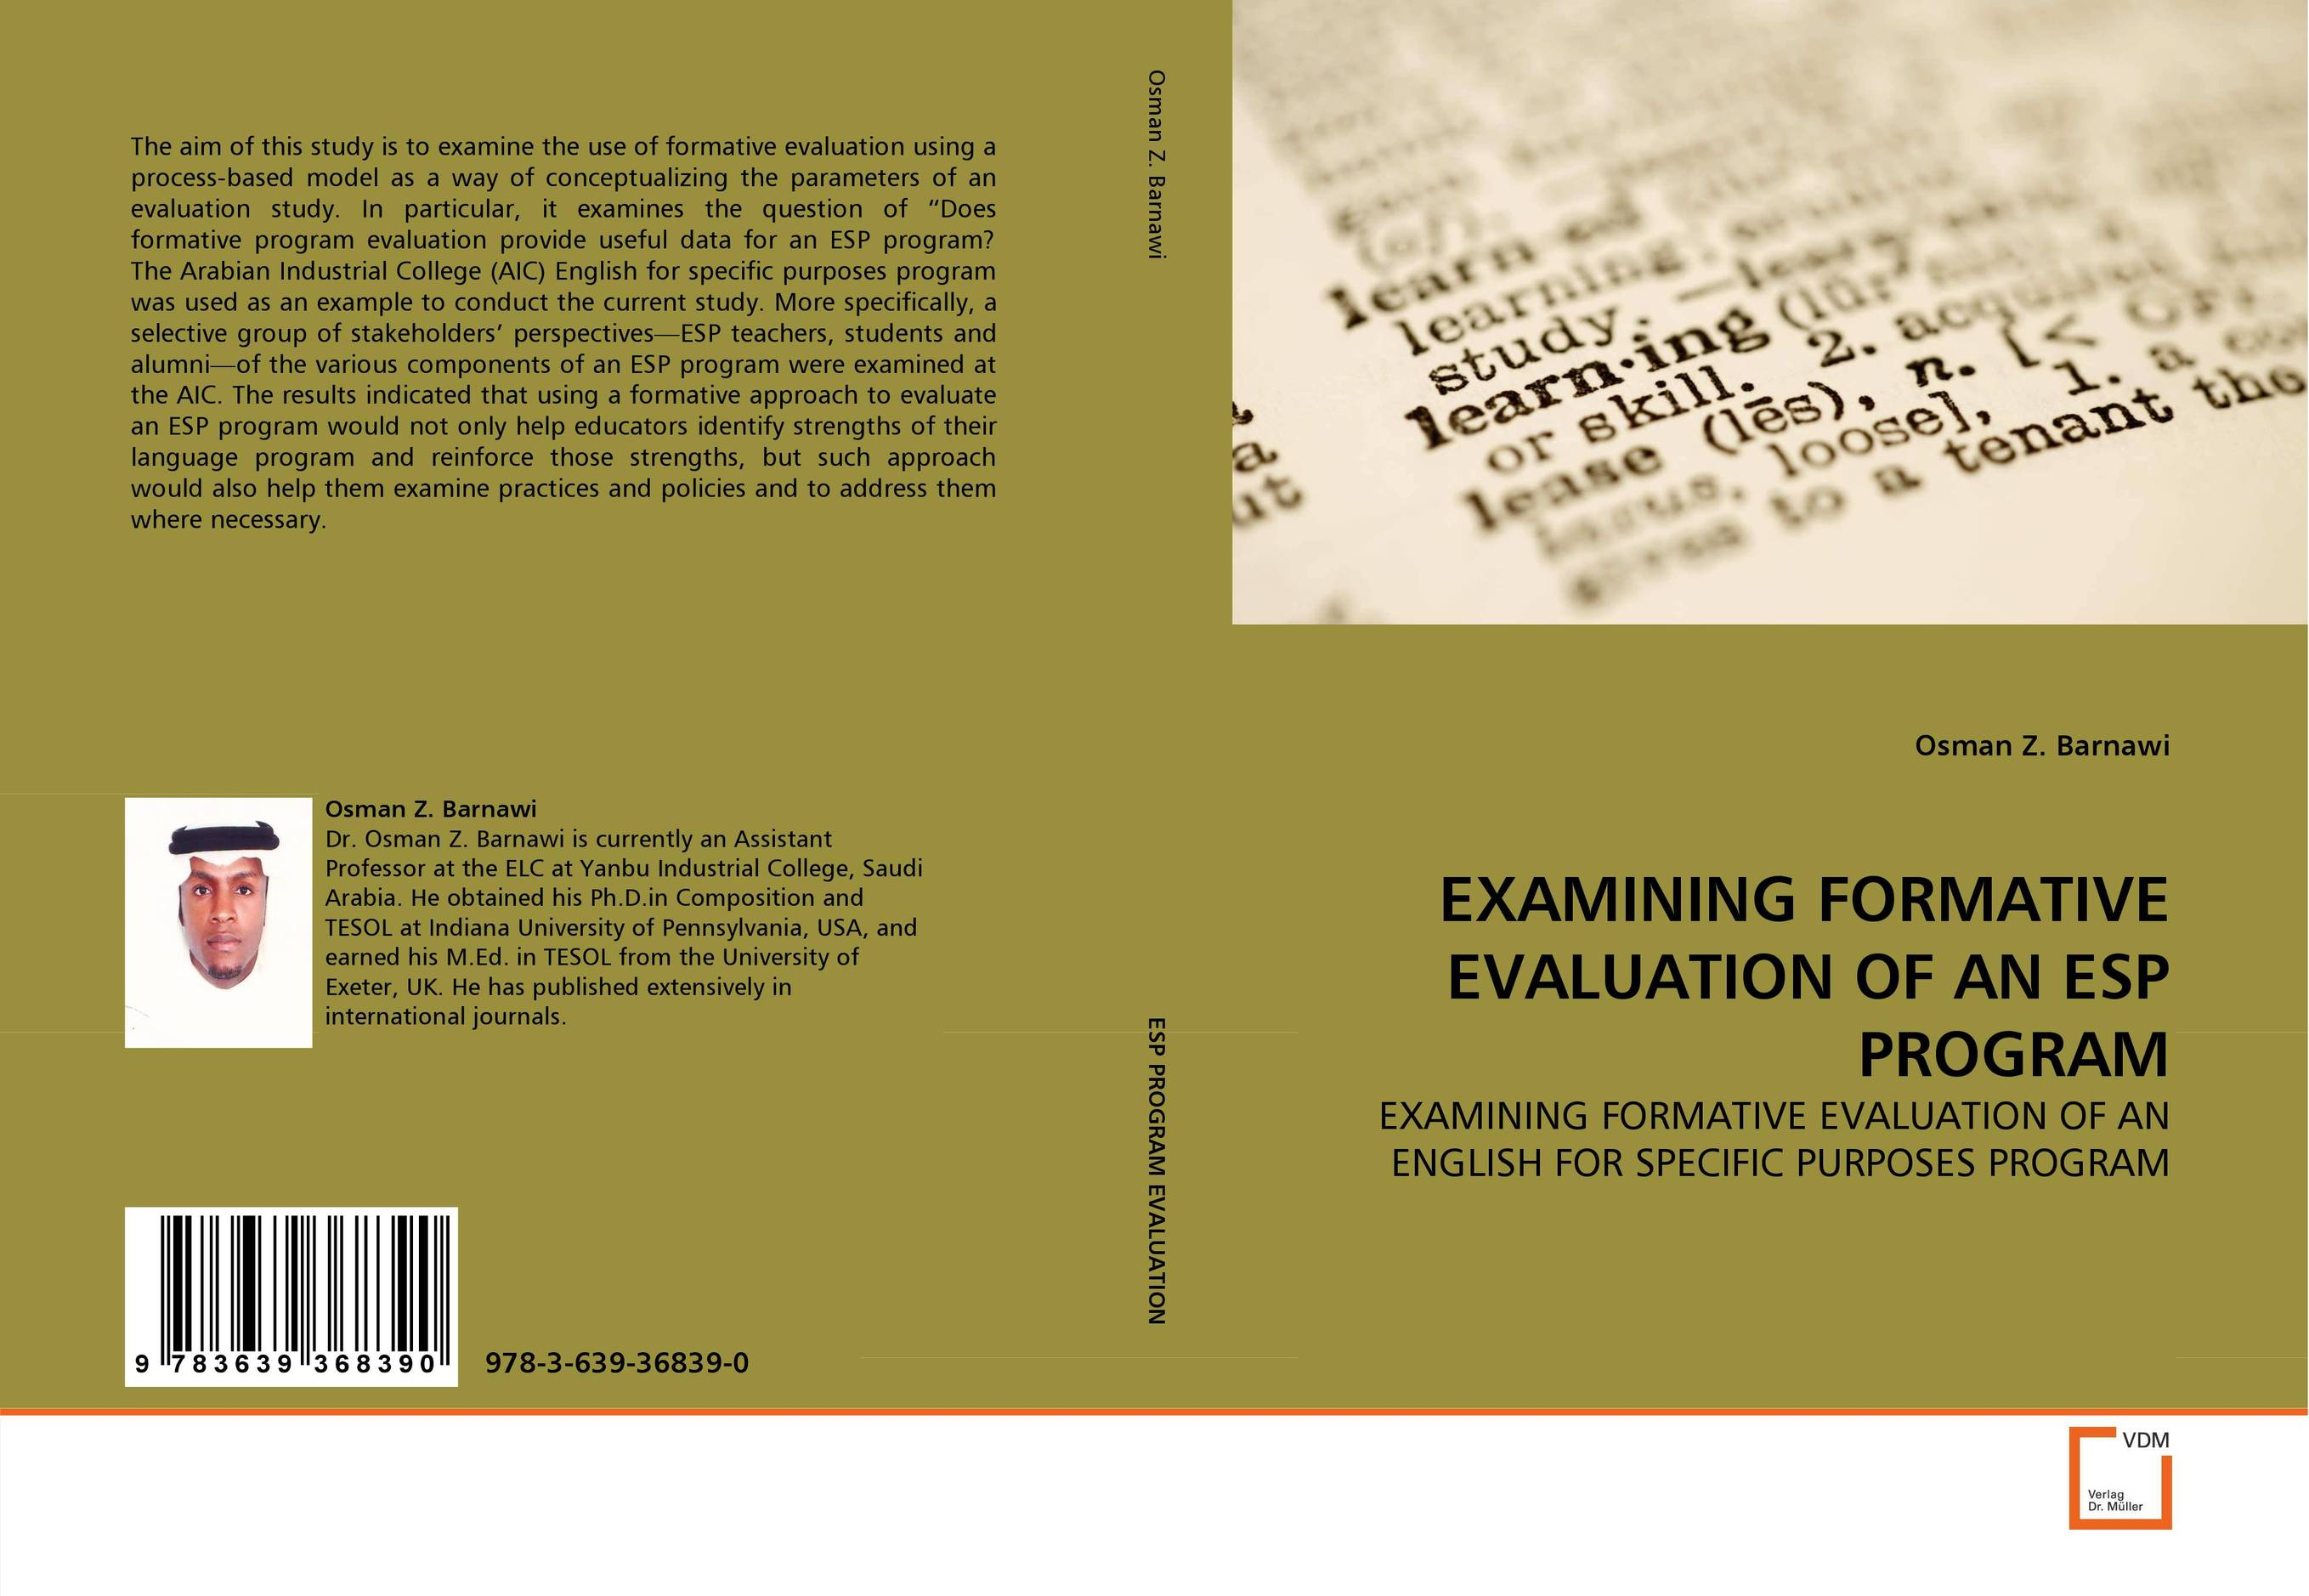 EXAMINING FORMATIVE EVALUATION OF AN ESP PROGRAM the role of evaluation as a mechanism for advancing principal practice